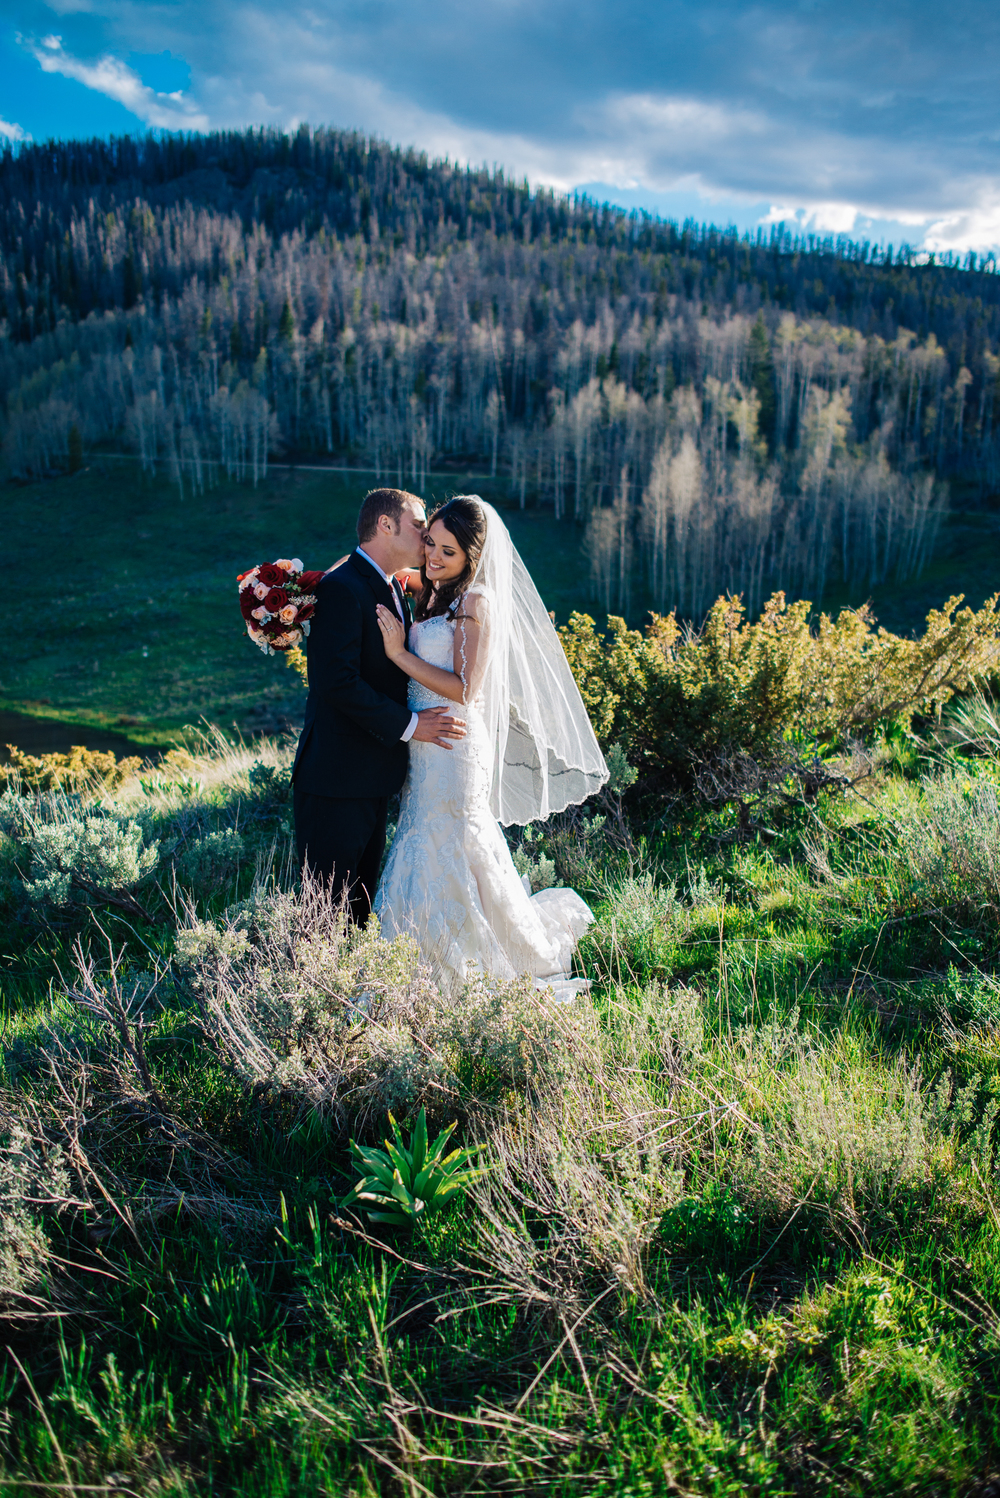 10adventerous-wedding-photographer-100010107colorado-mountain-wedding-photographer-romantic-wedding-pictures_006.jpg